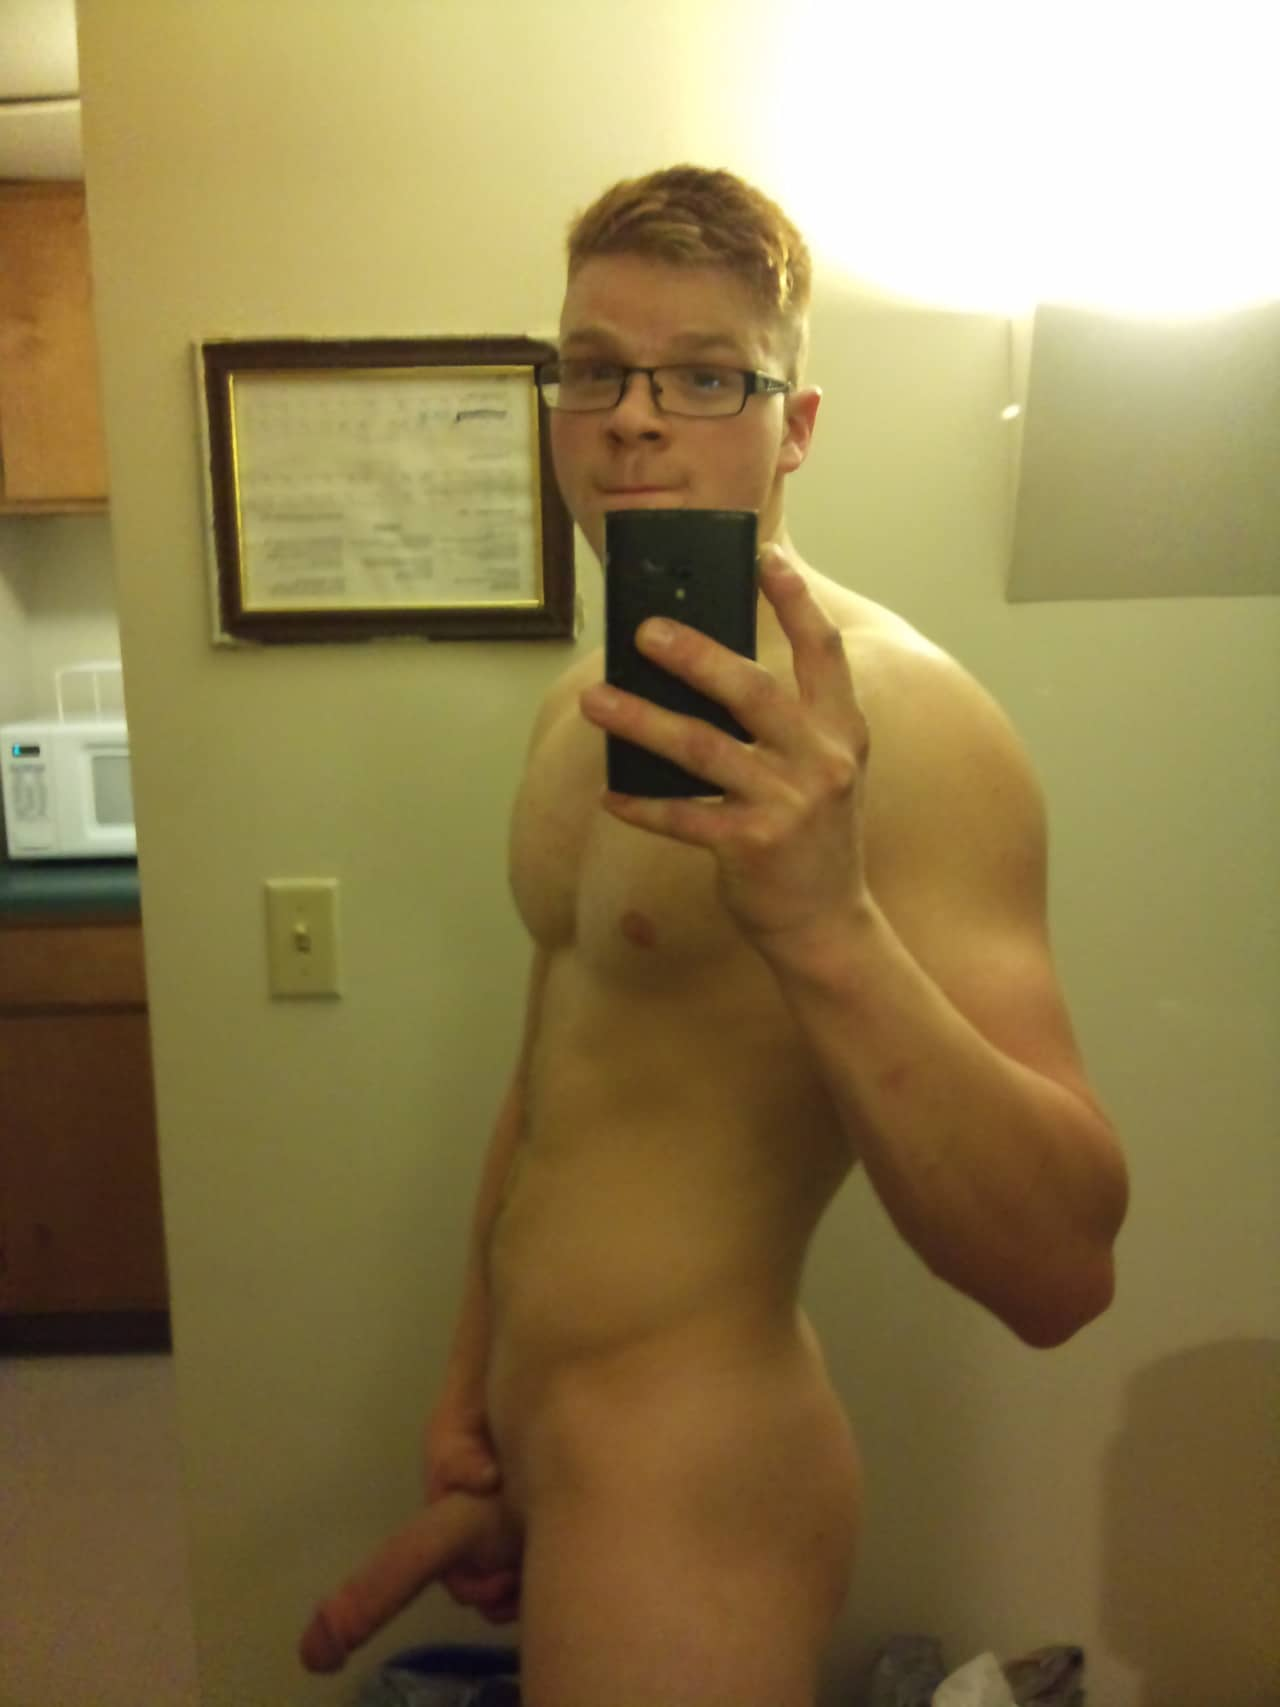 Sexy Guy Taking Nude Selfies - Amateur Gay Twink